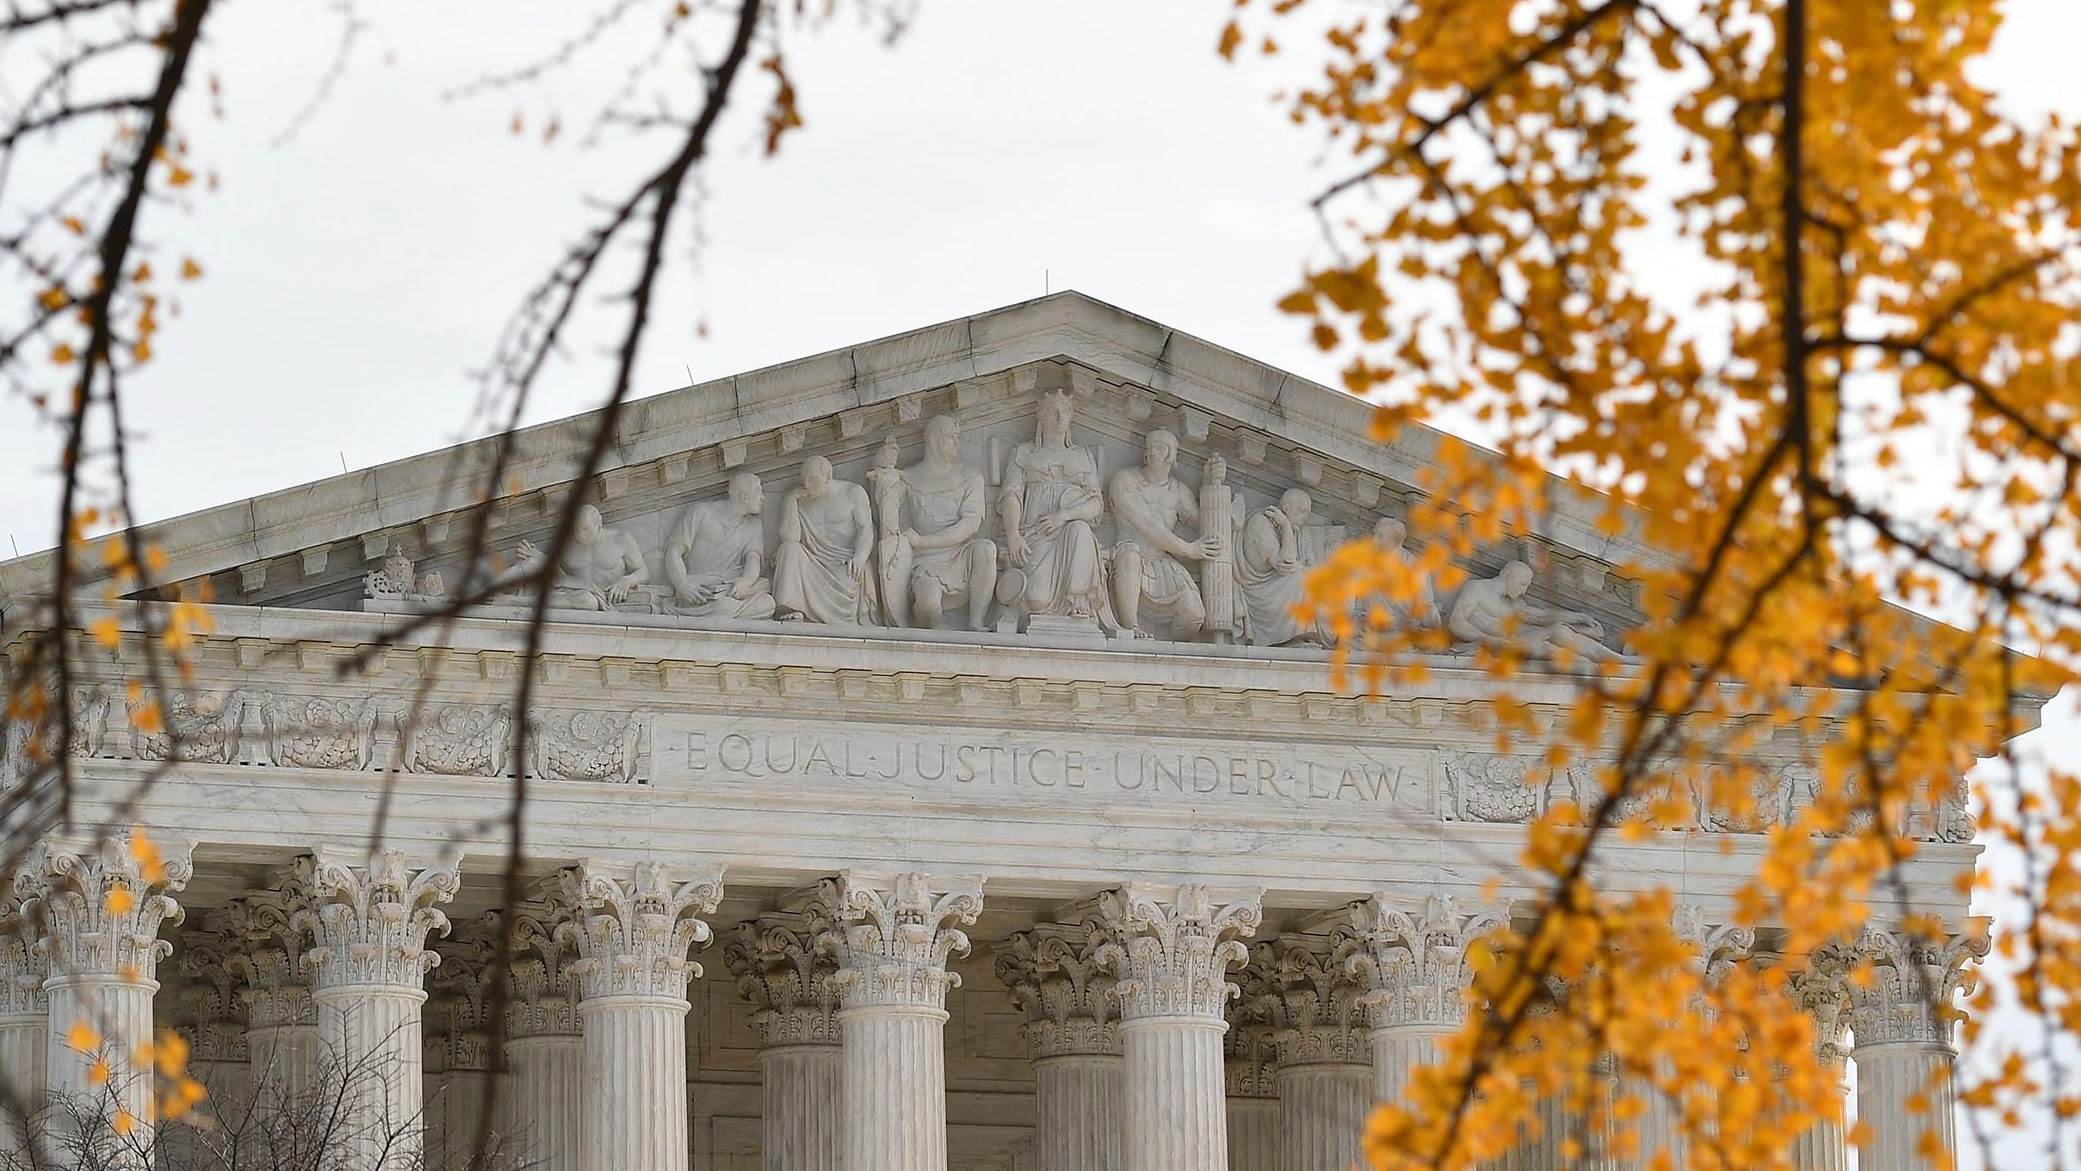 The US Supreme Court building is seen on December 7.